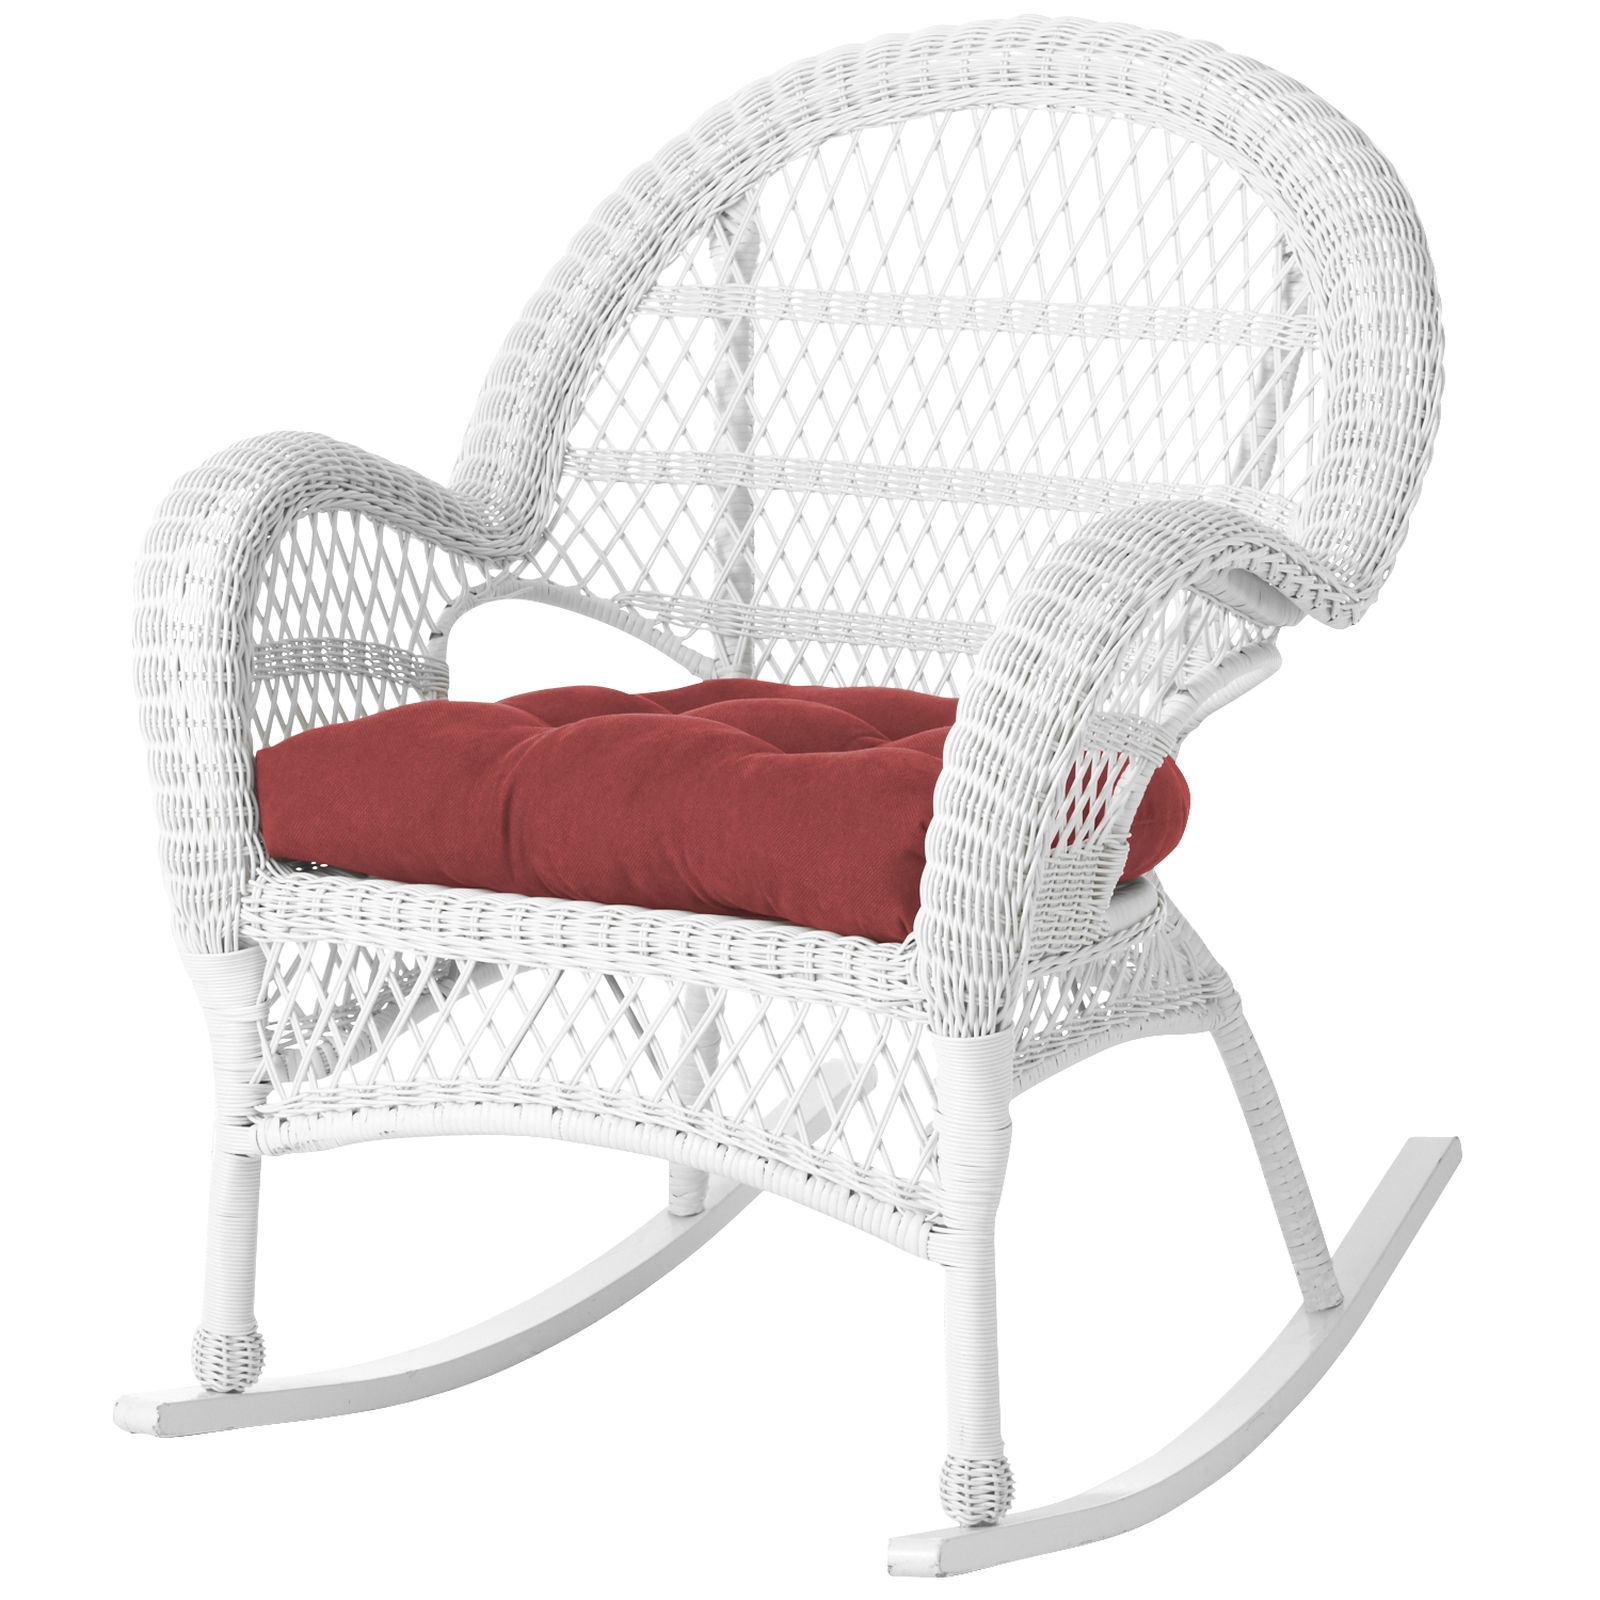 White Wicker Rocking Chairs Within Latest White Wicker Rocking Chair Peachy Ideas – Chair Ideas (View 15 of 15)